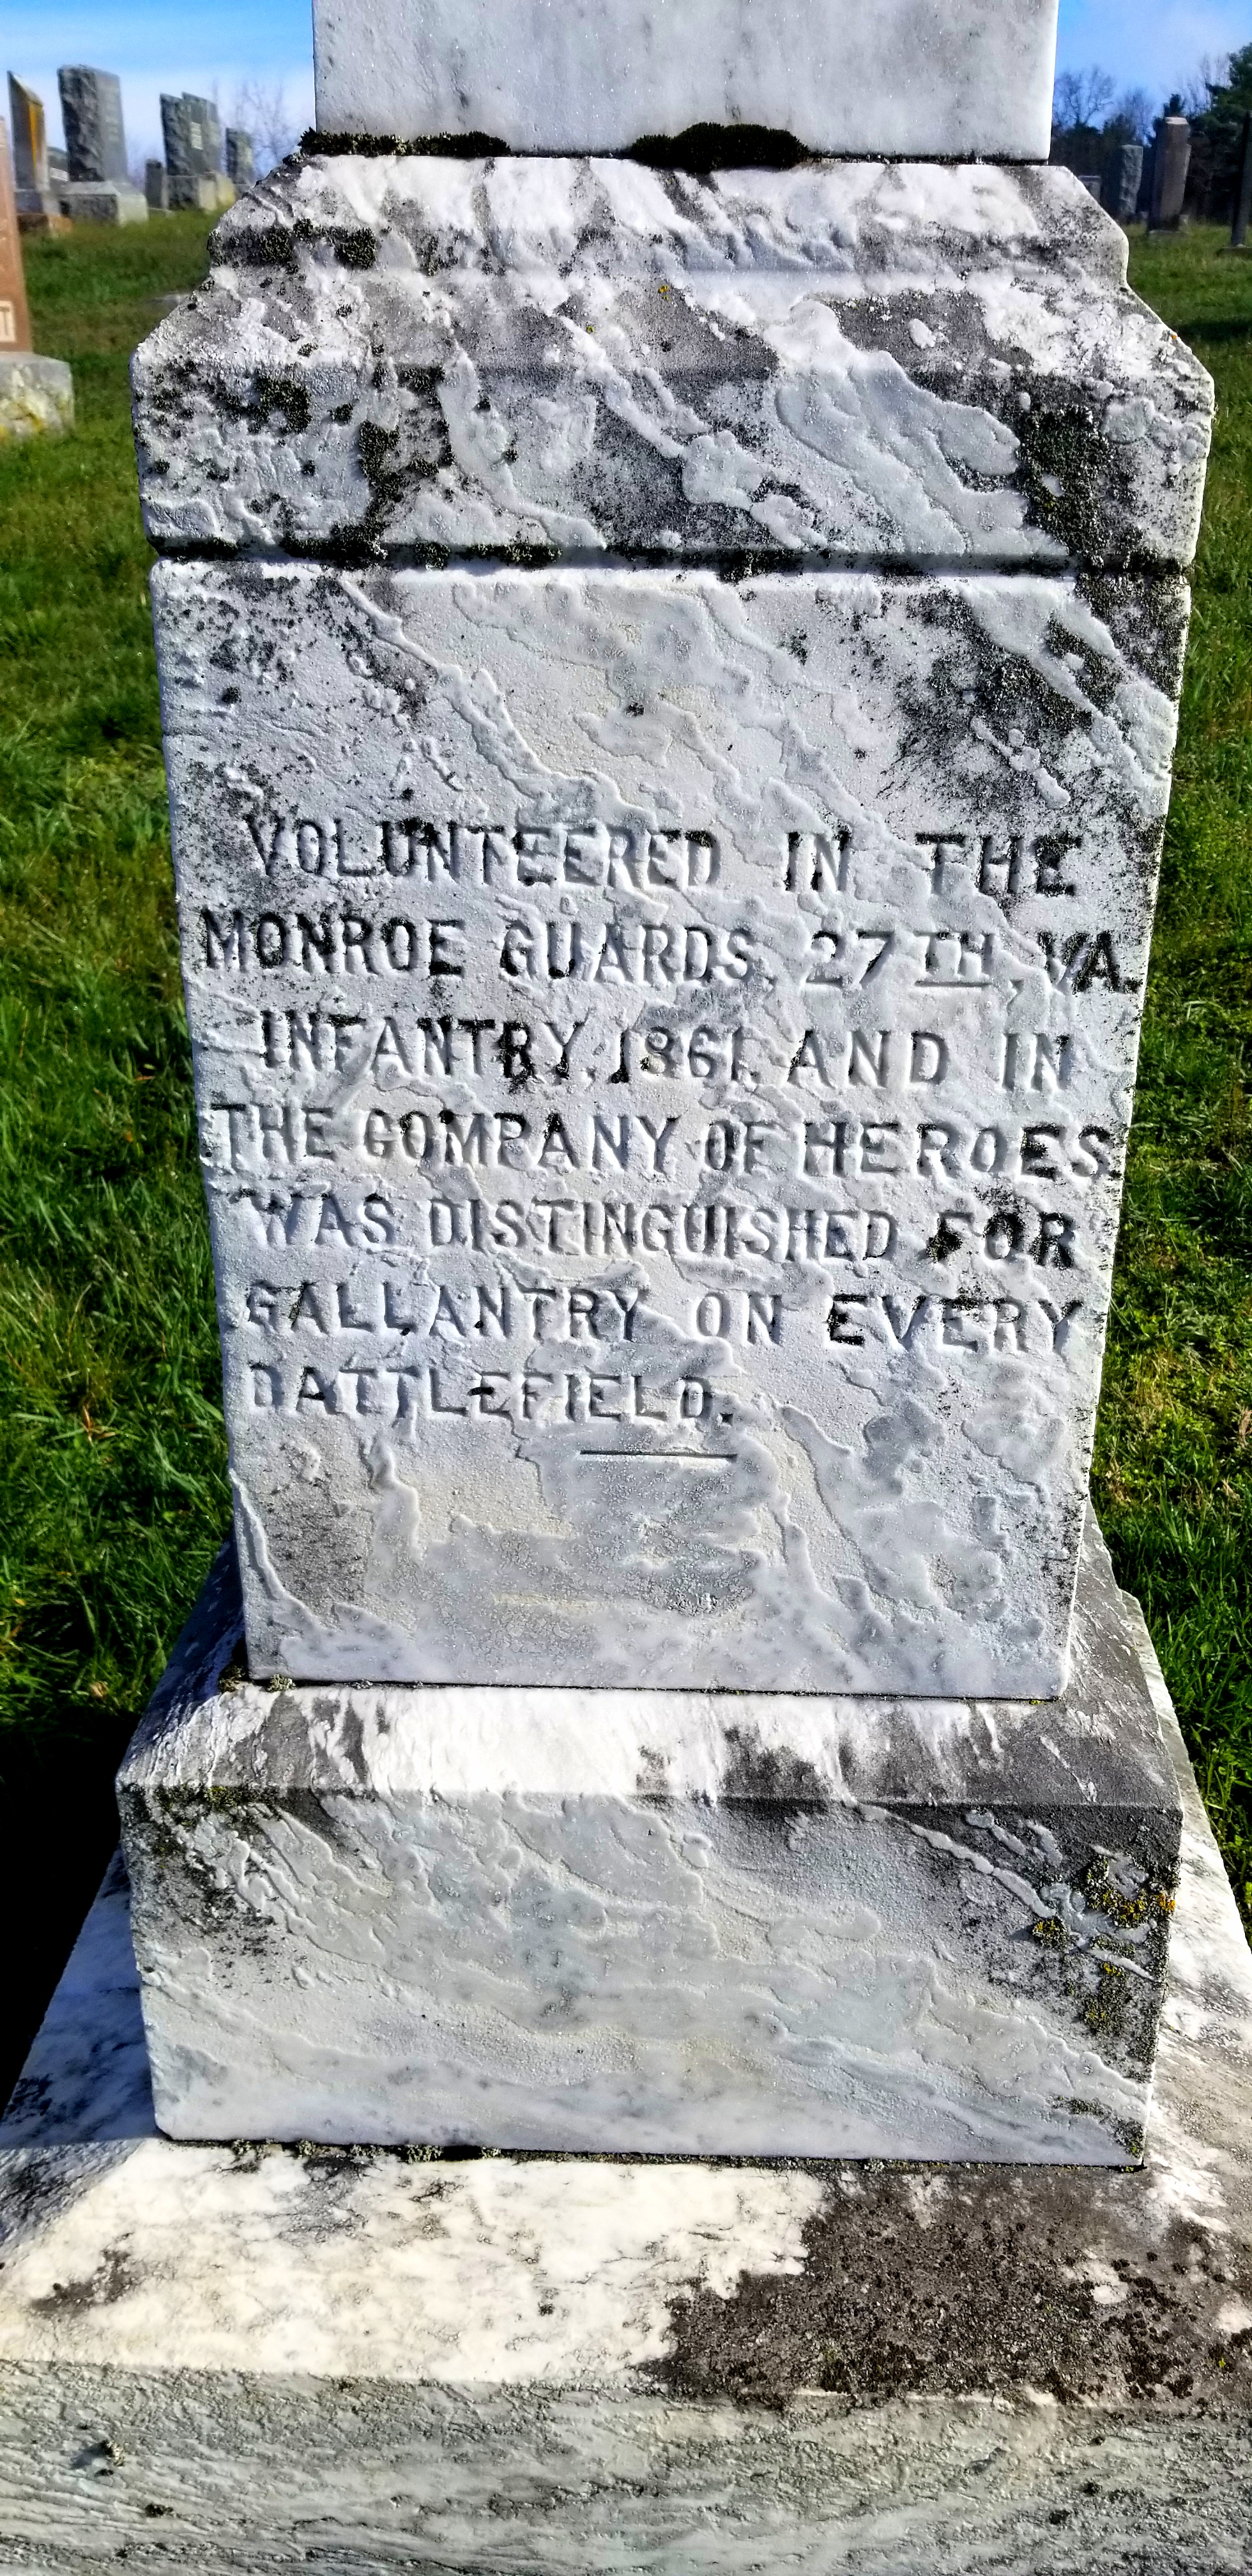 close up on the left side of the memorial. It informs readers that Foster served in the Monroe Guard 27th V.A. division.